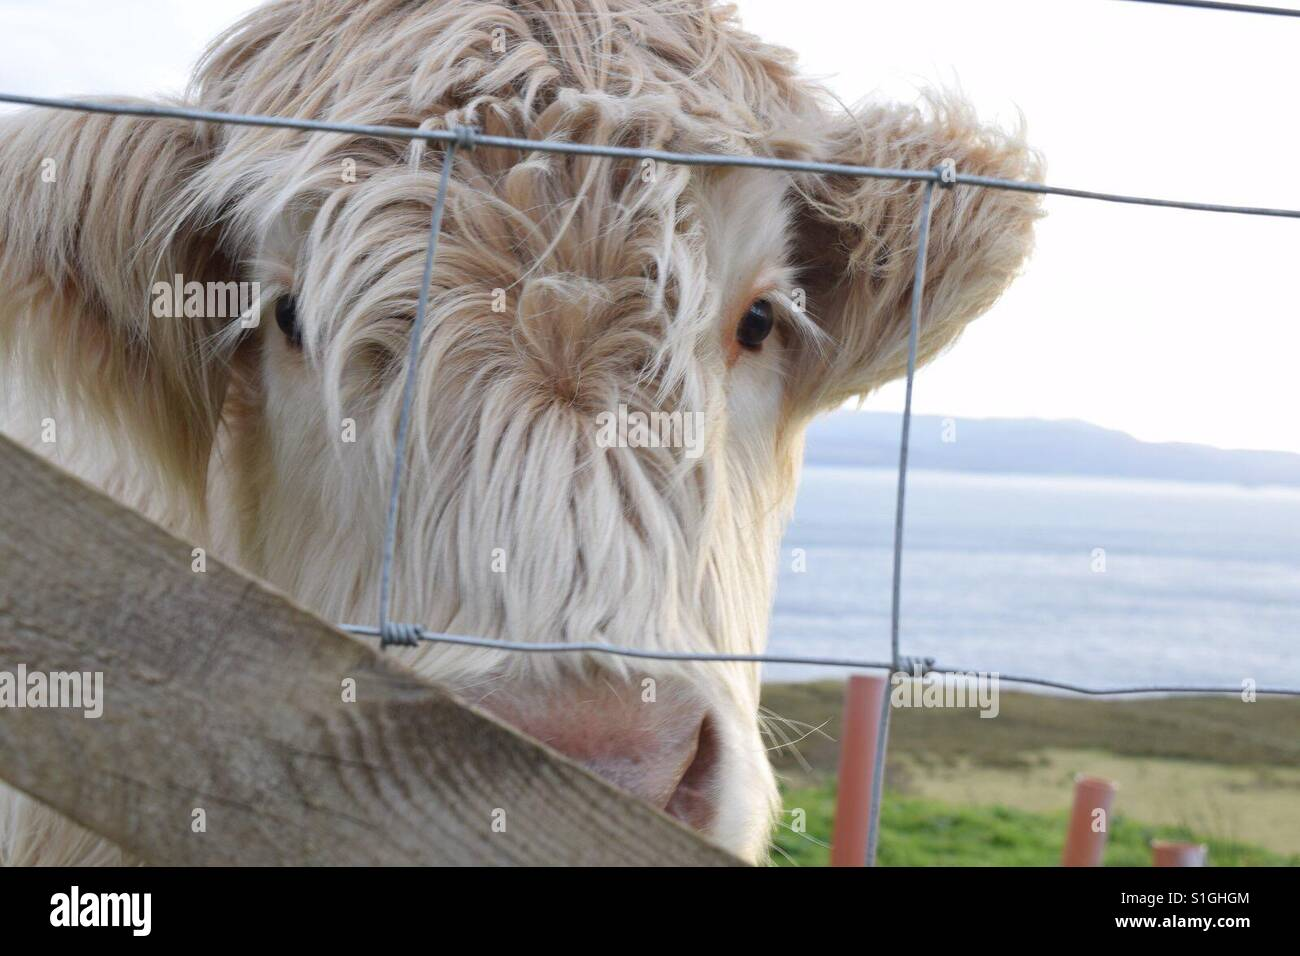 Woolly moo in the Scottish highlands - Stock Image